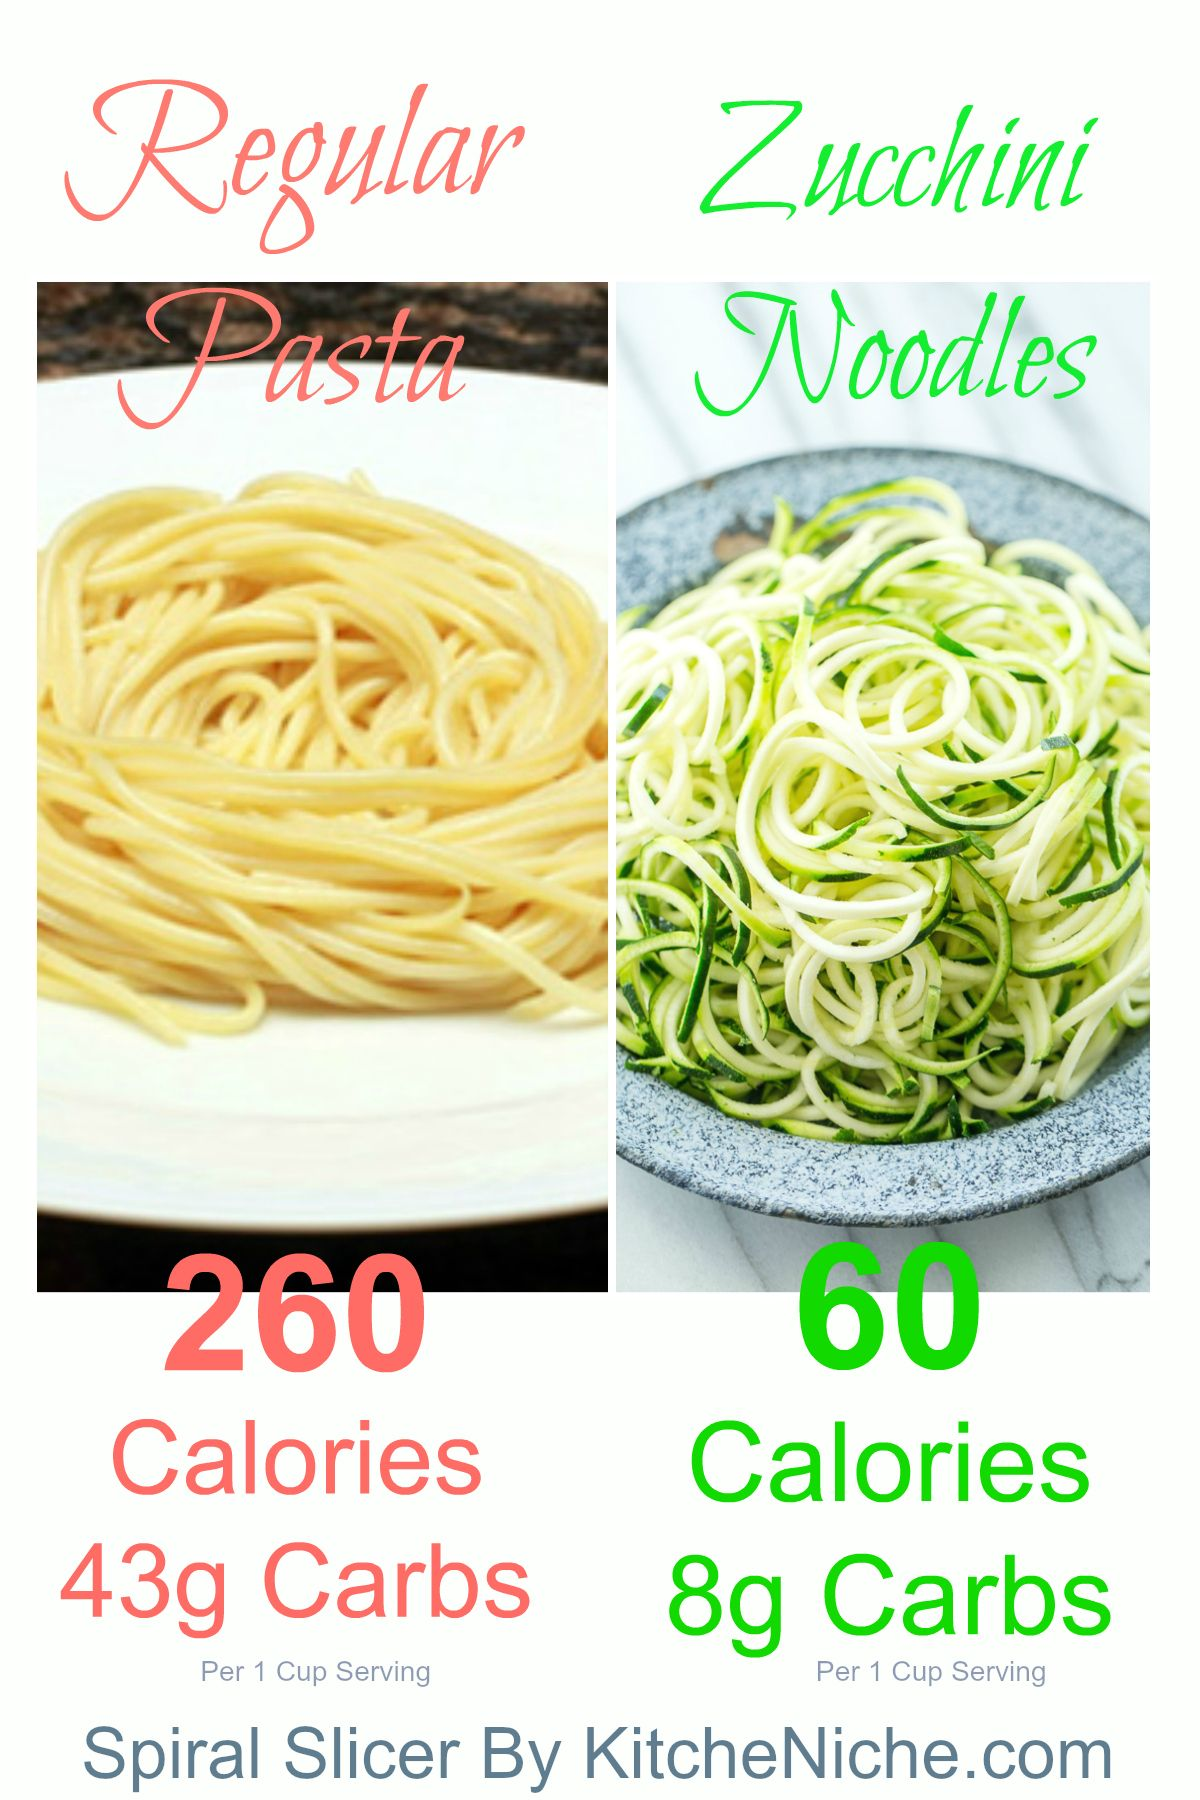 Regular Pasta Vs Zucchini Pasta Lower In Calories Carbs Spiral Slicers Make It Easy To Turn Zucchini Into Hea Easy Healthy Breakfast Healthy Diet Food List